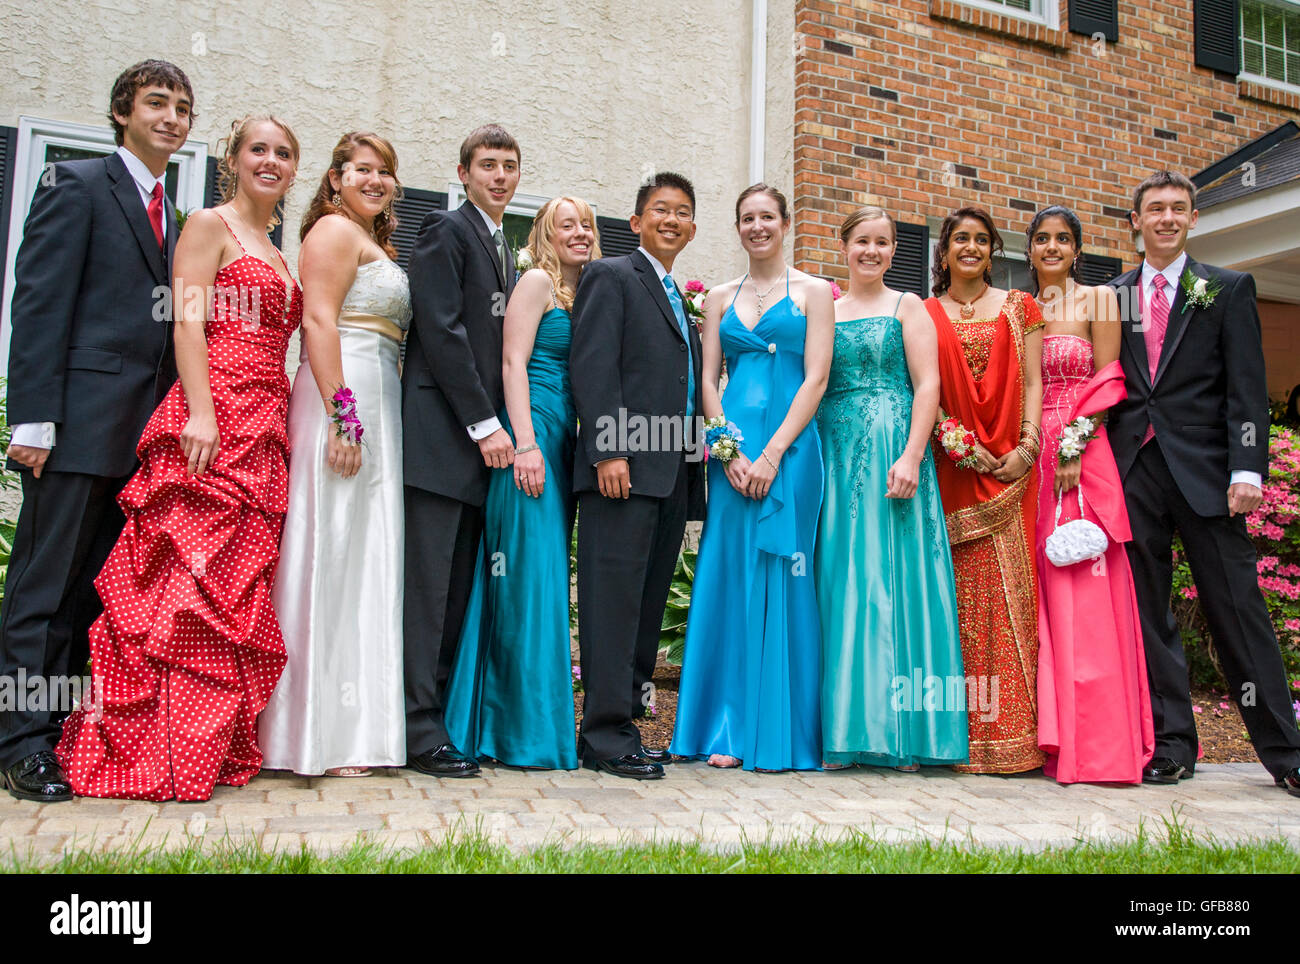 Charming Prom Dresses For Guys Pictures Inspiration - Wedding Ideas ...